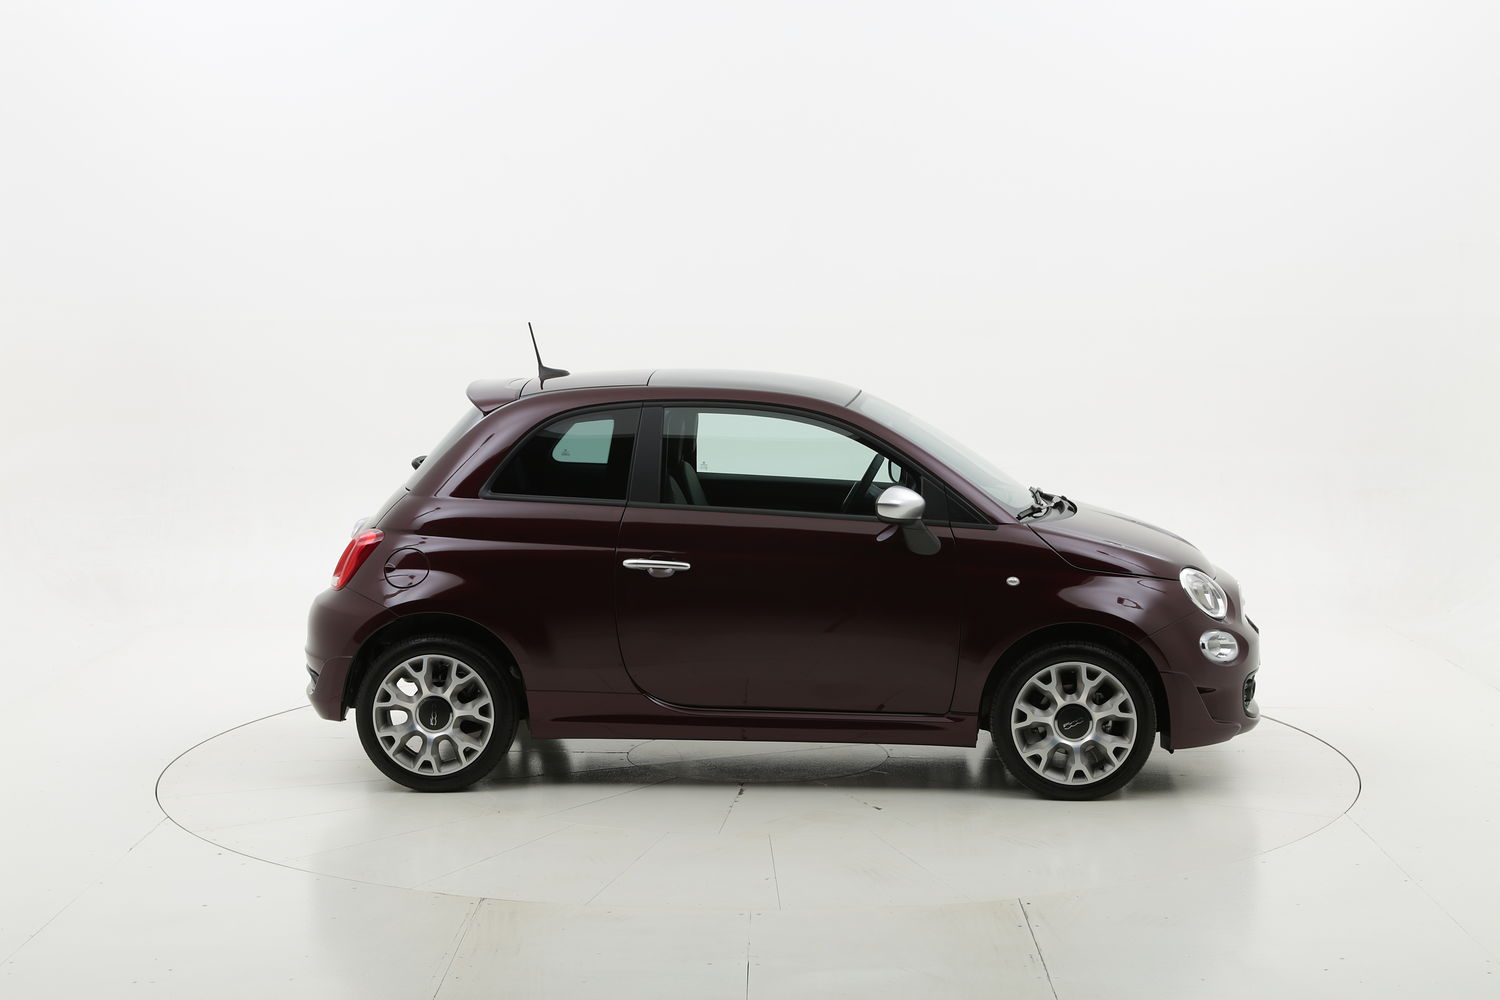 Fiat 500 Rockstar My2020 Full Optional km 0 benzina rossa scura